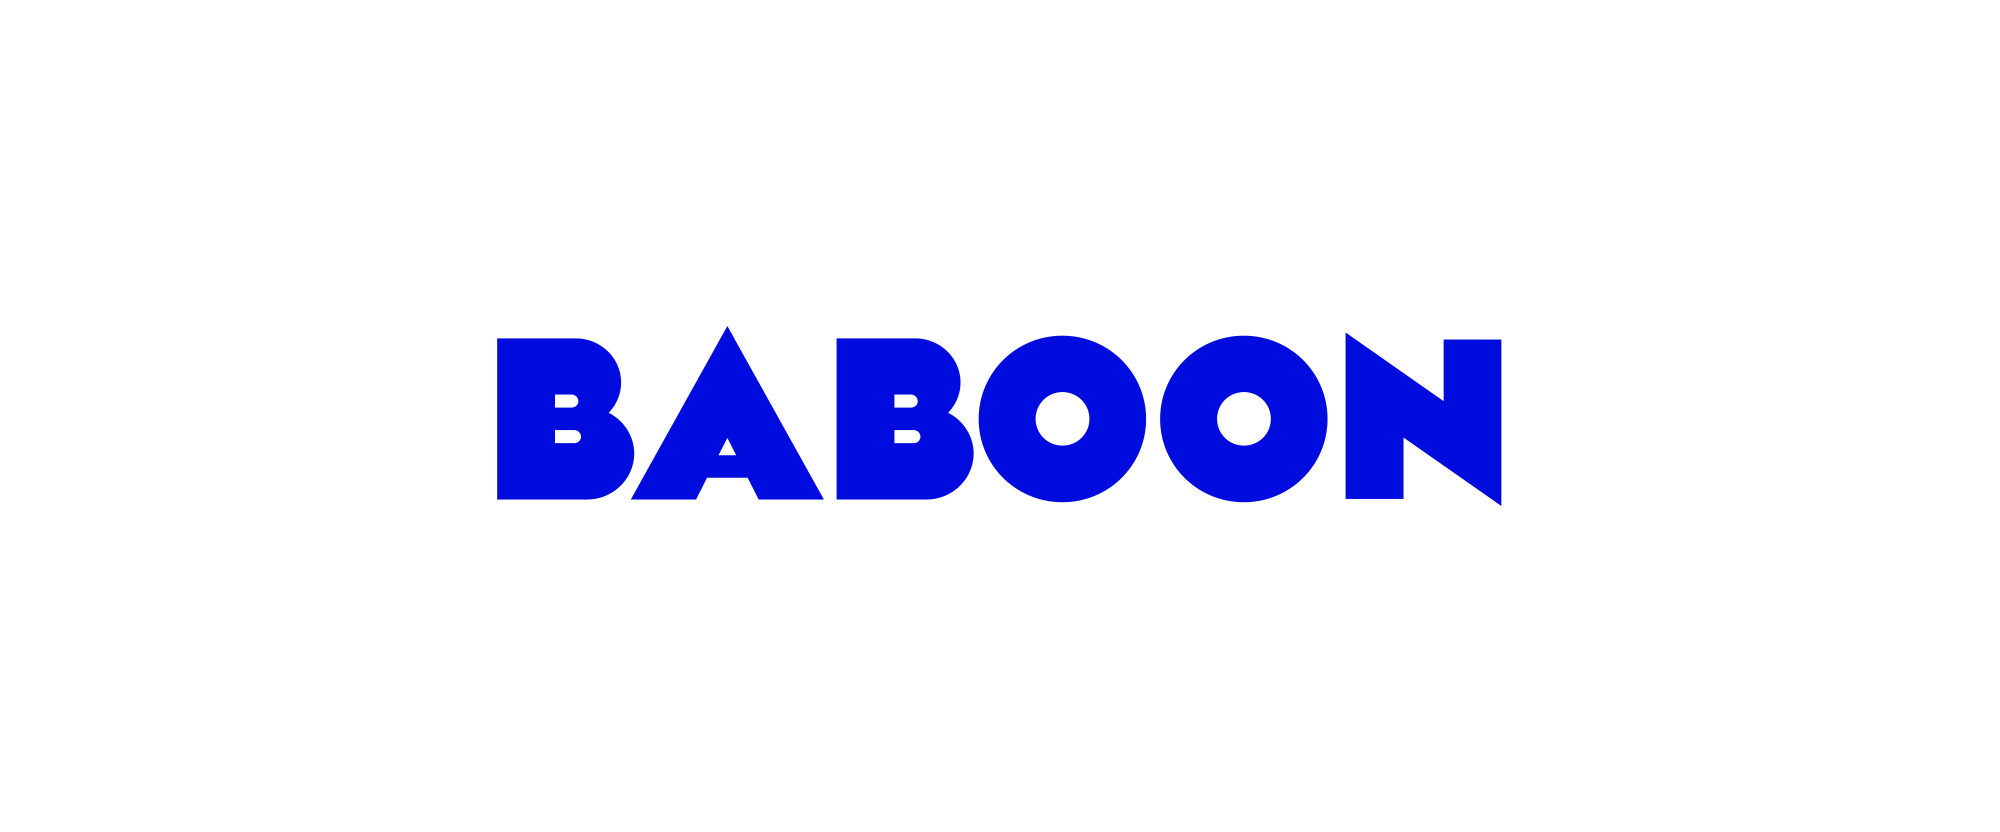 New Logo and Identity for Baboon by Sagmeister & Walsh